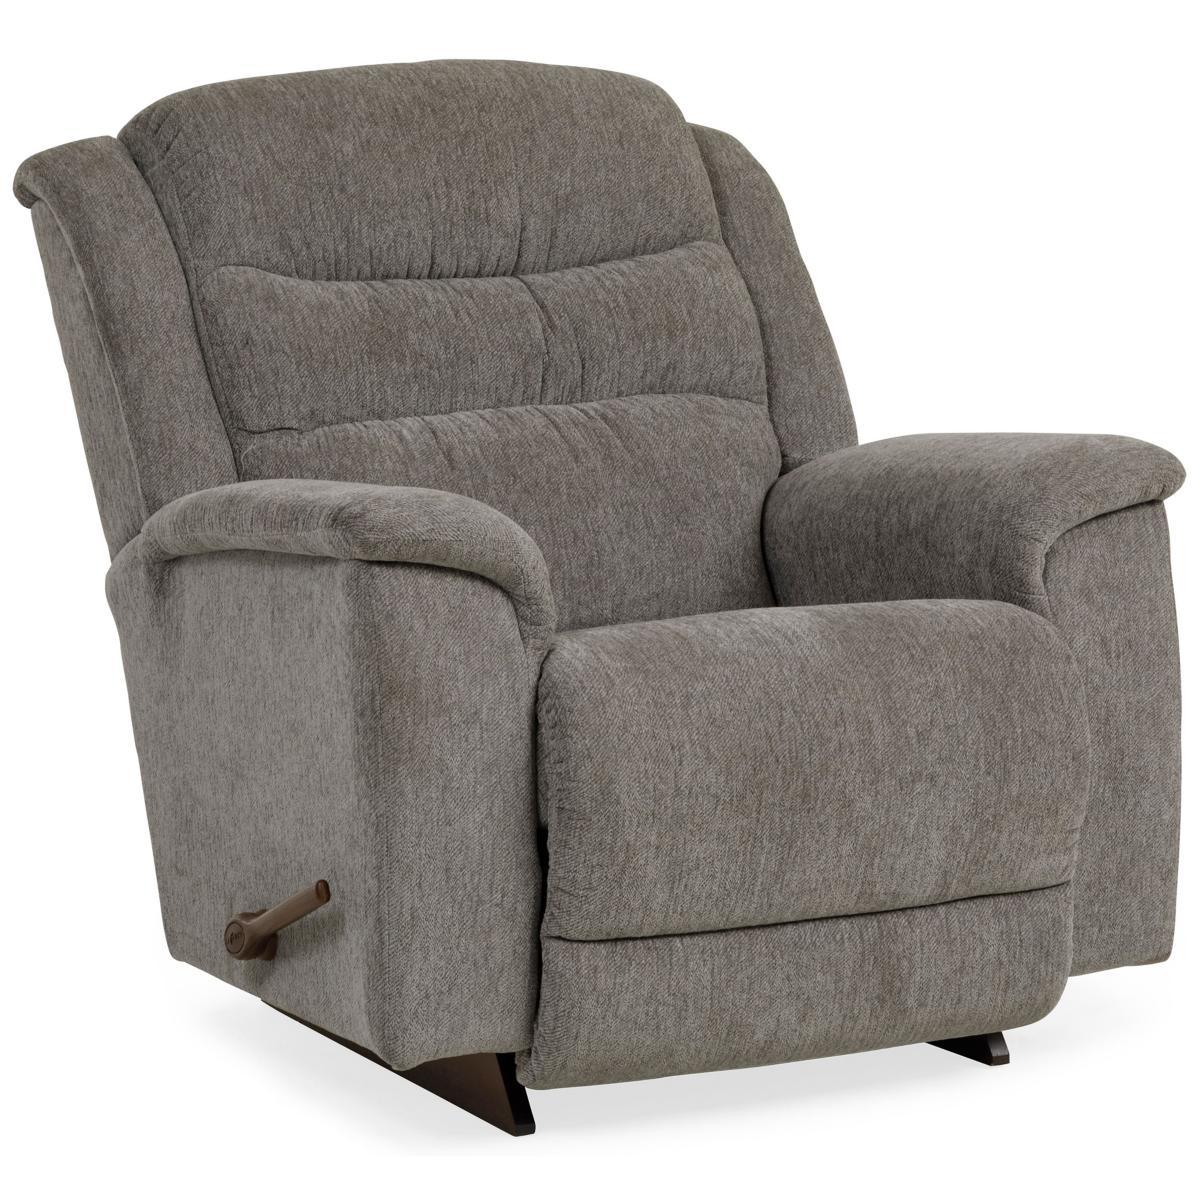 A picture containing seat, sofa, furniture, indoor  Description automatically generated